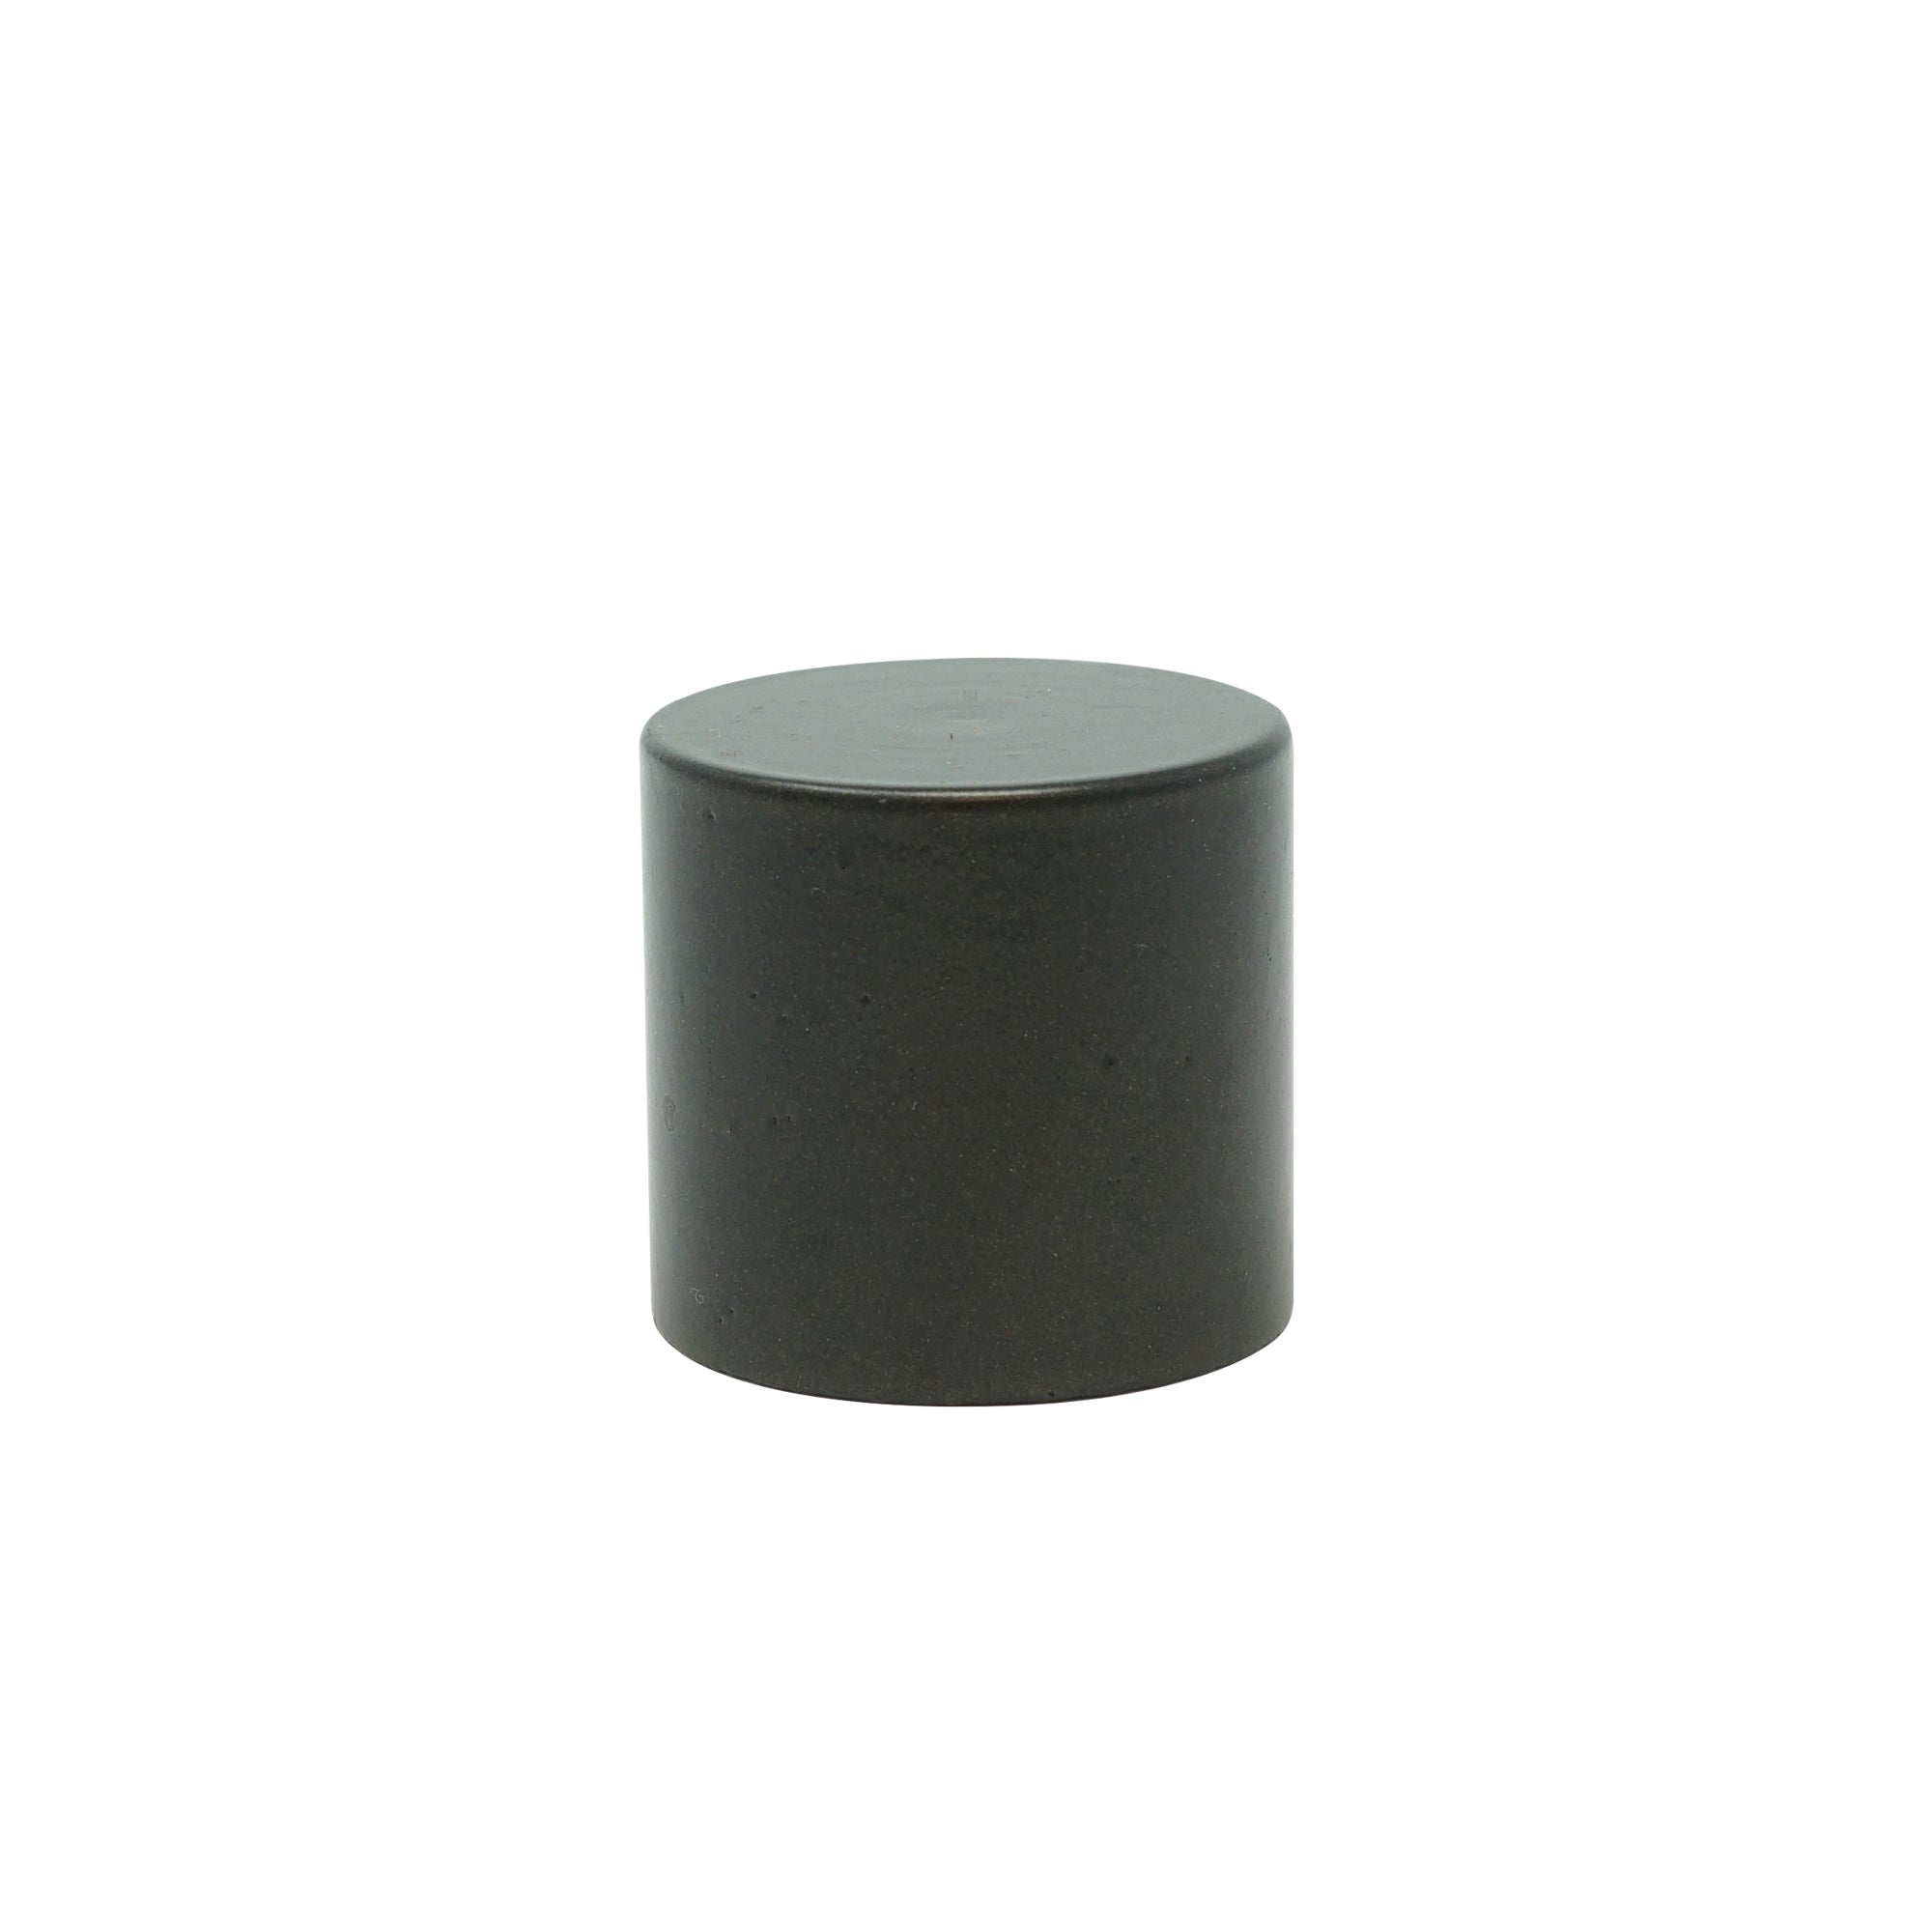 Metal Endcap - Oil Rubbed Bronze Finish